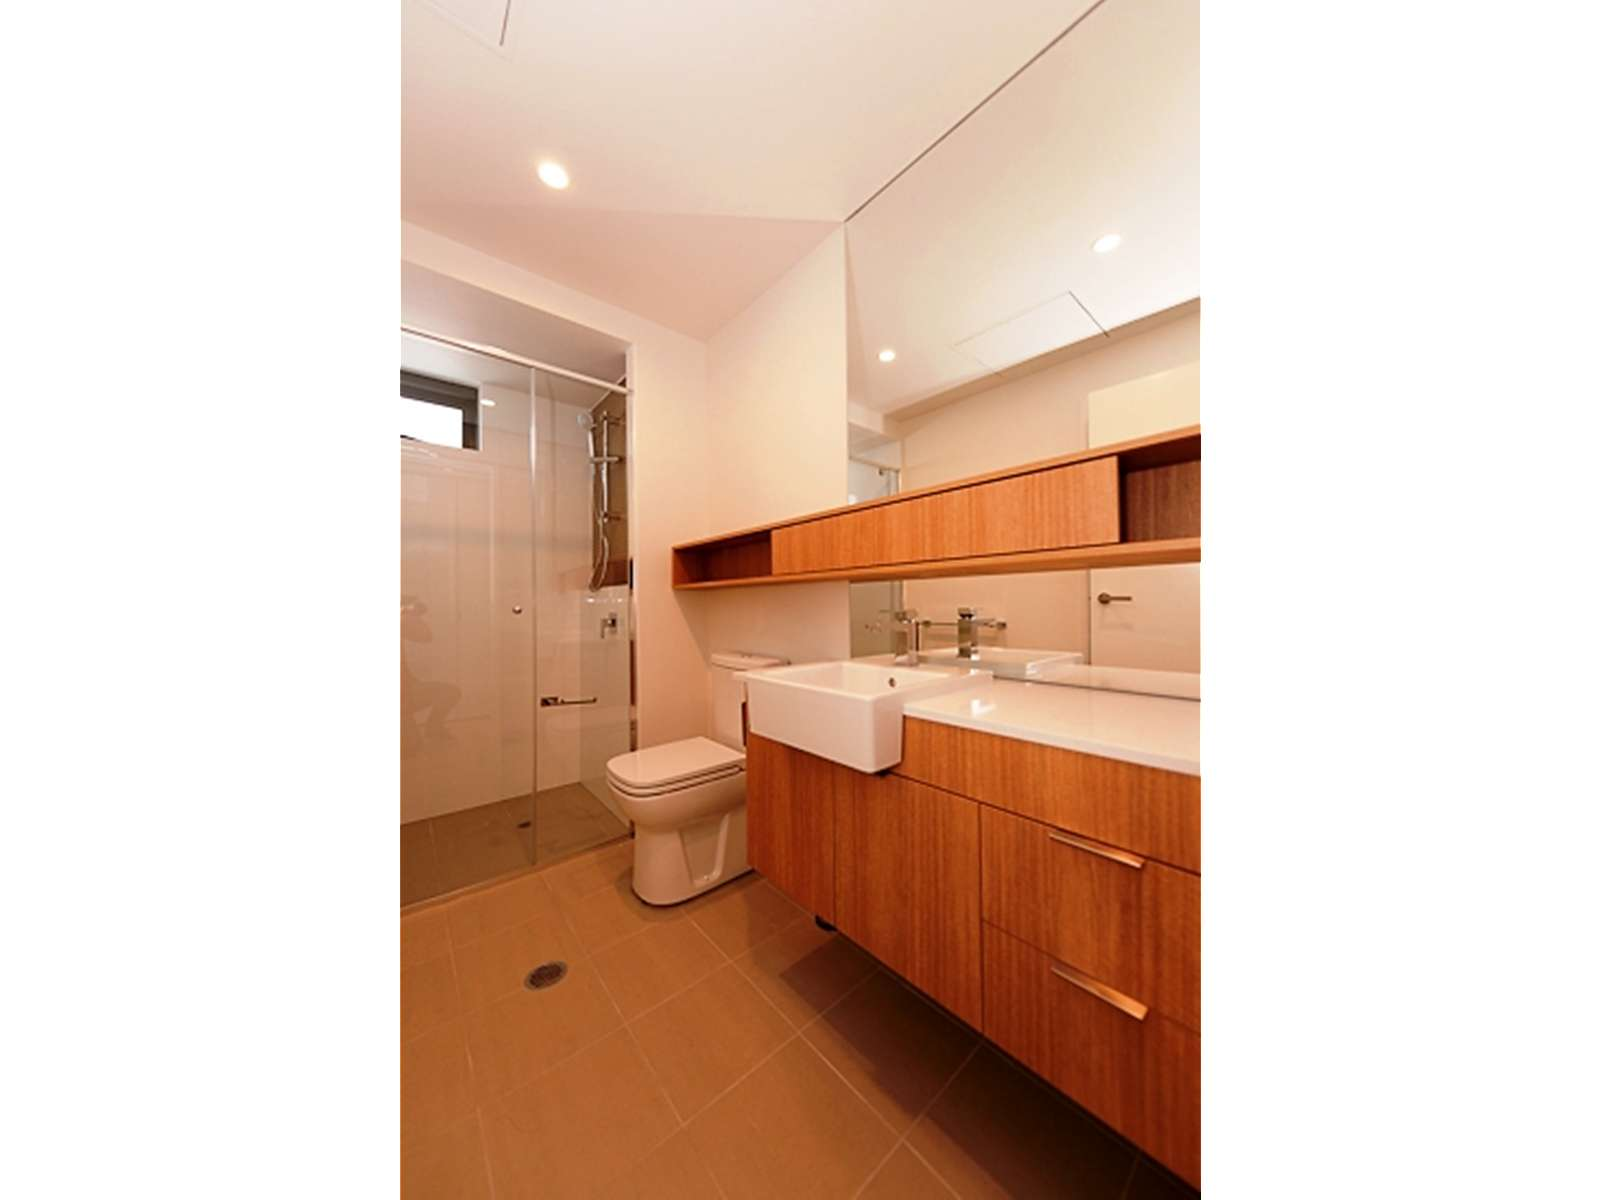 194-Rawtap-Pty-Ltd-atft-WH-&-PM-Daniels-Family-Trust-accomodation-South-Brisbane